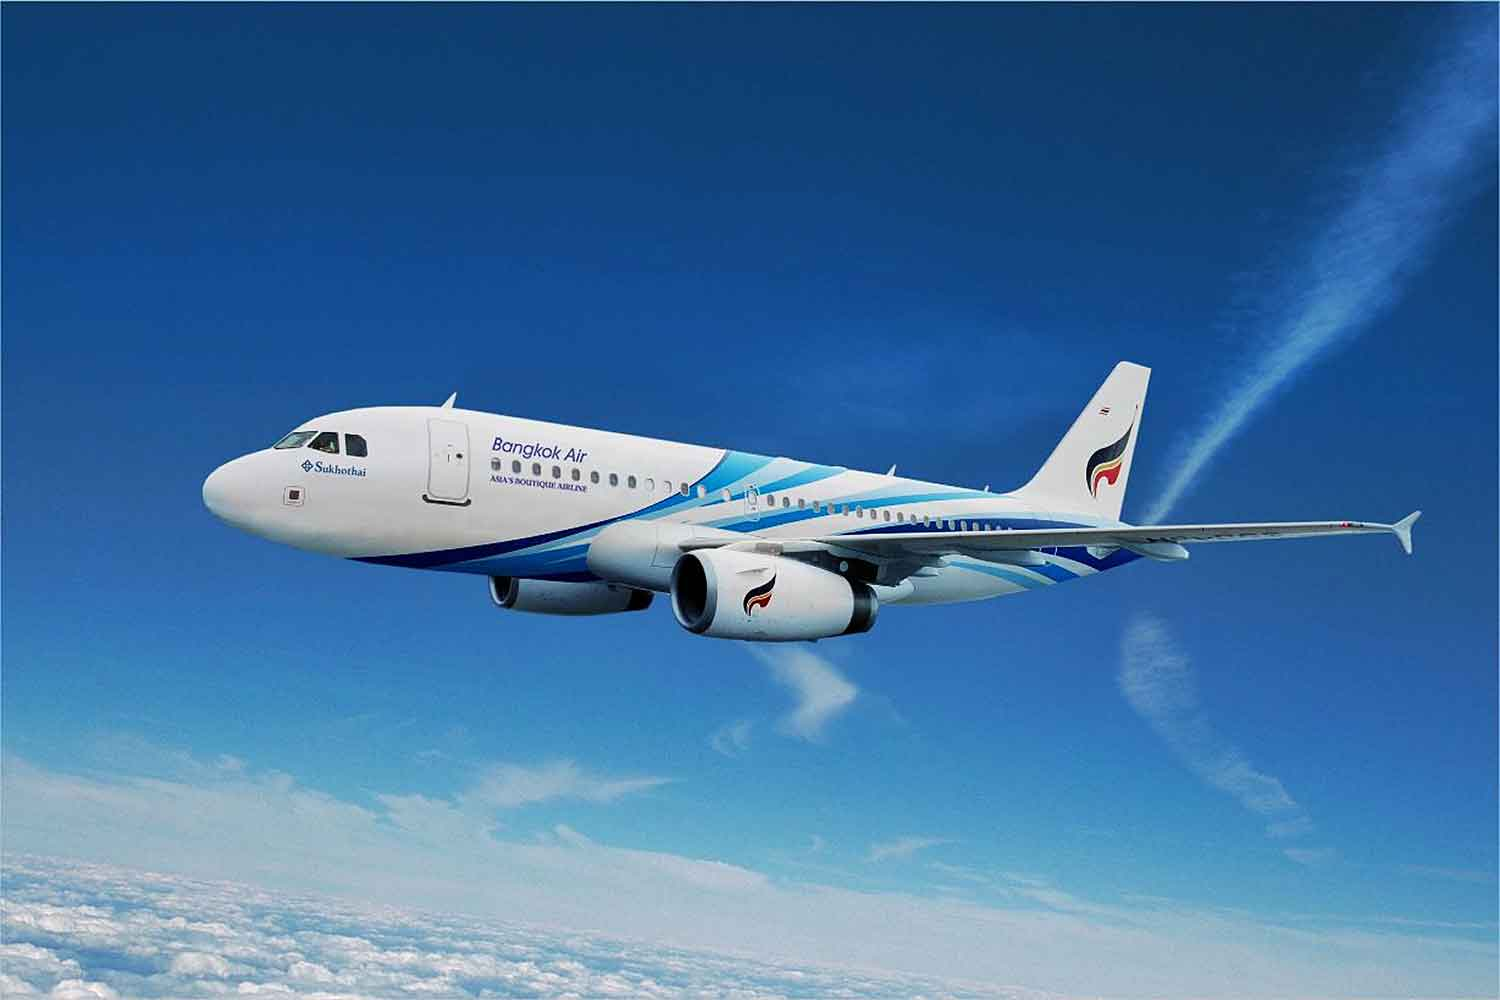 The Bangkok Airways chief says the airline has to tighten seat belts during turbulence.